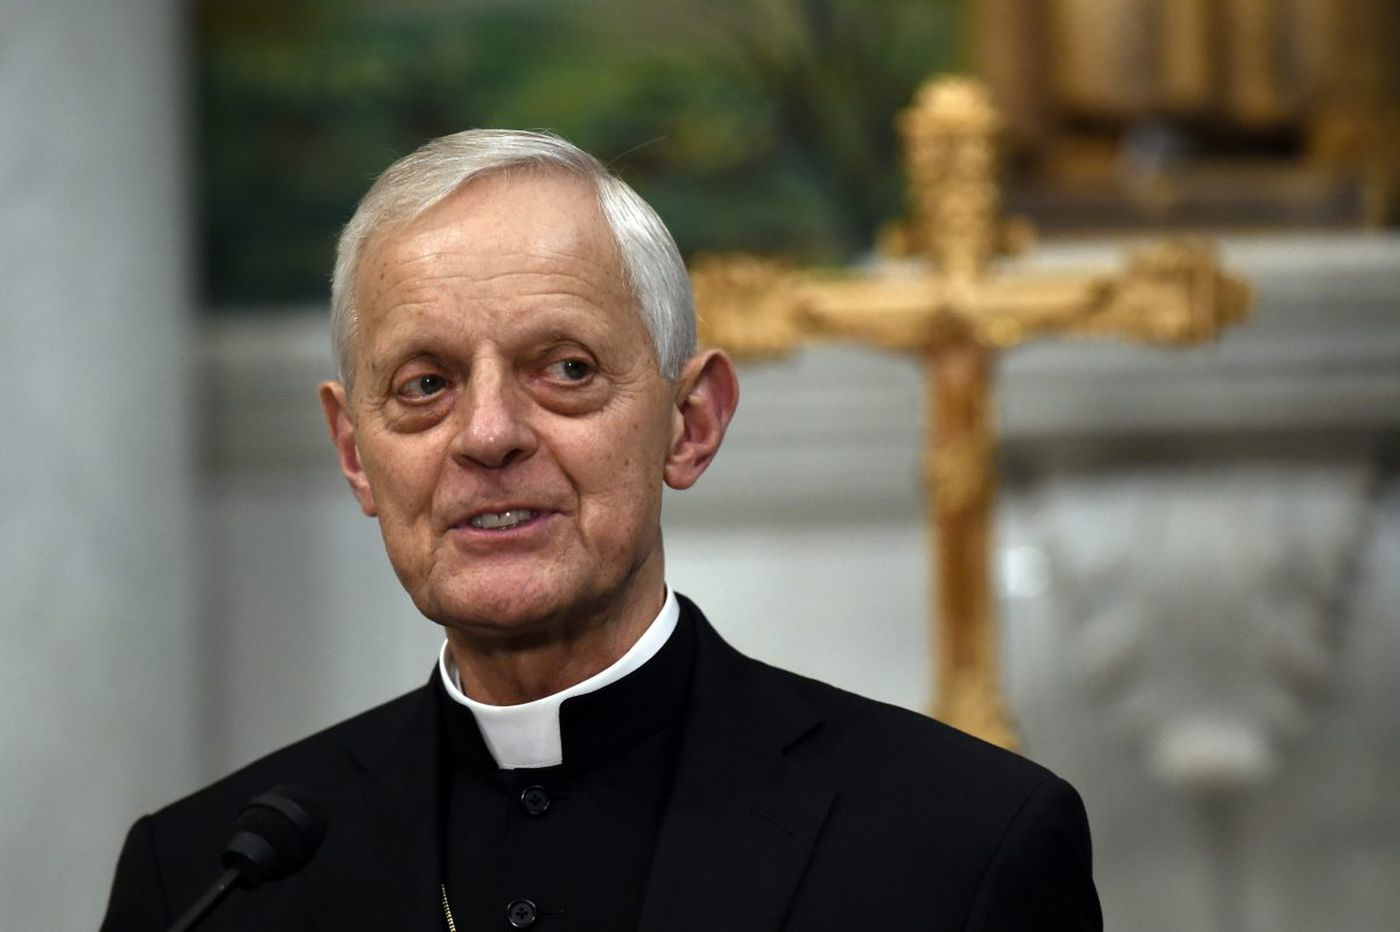 Cardinal Donald Wuerl says he will go to the pope soon to discuss his potential resignation